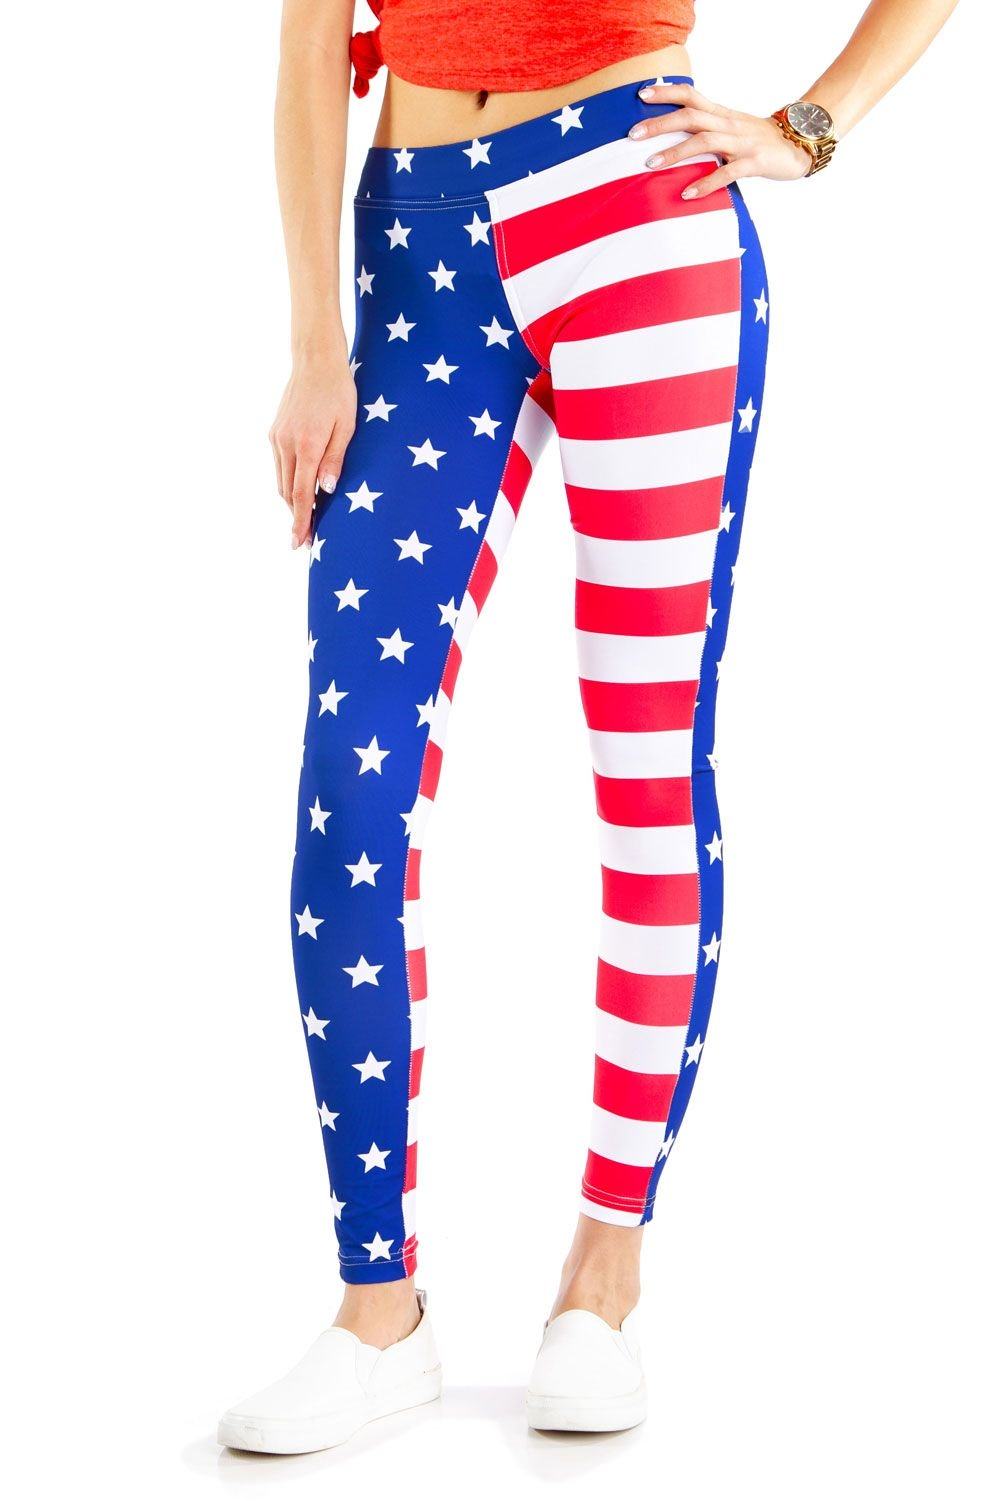 american flag_android